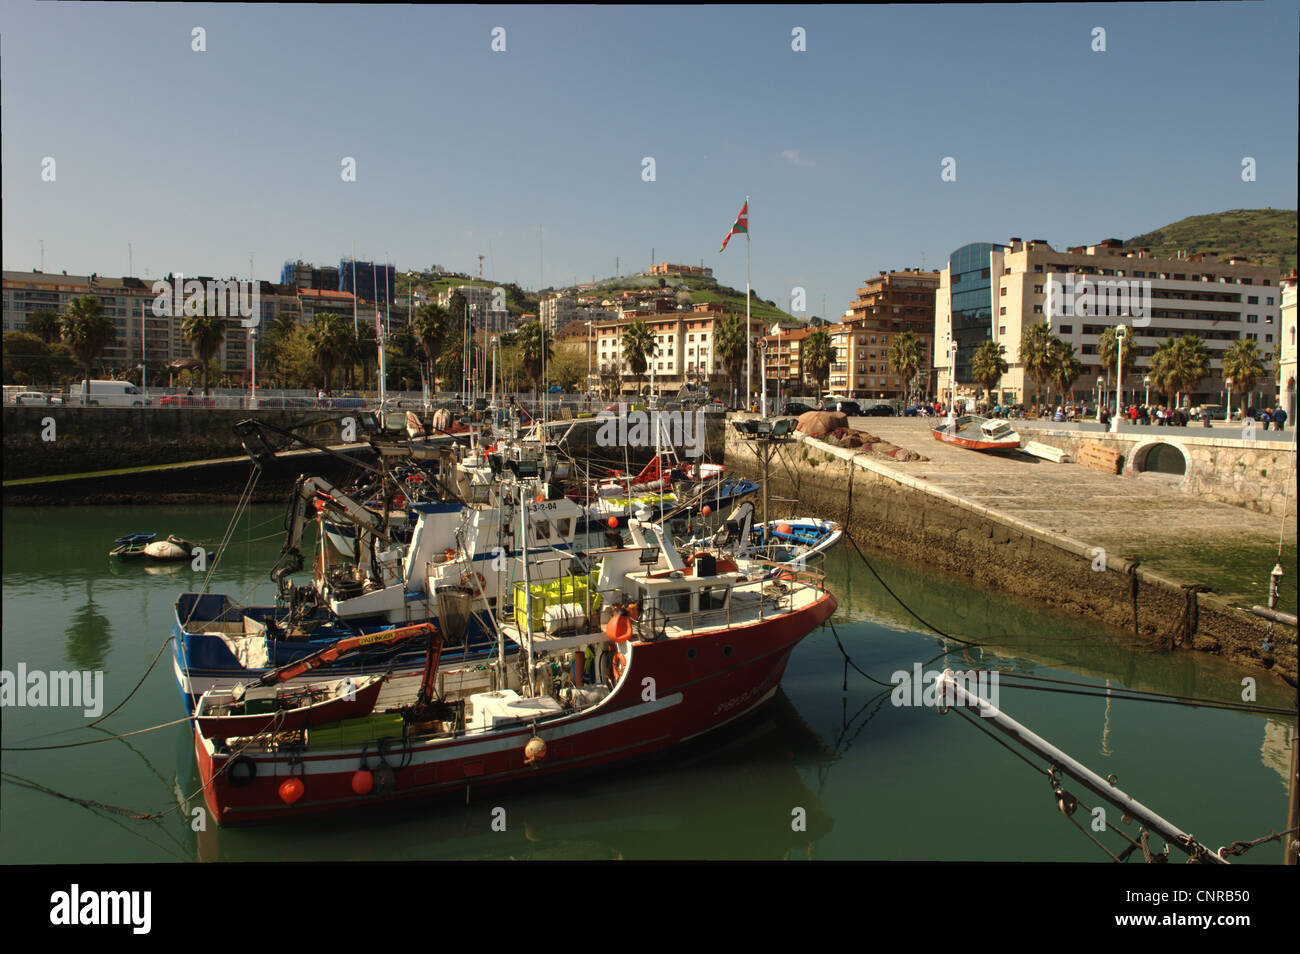 A view of the harbour of Santurzi - Stock Image